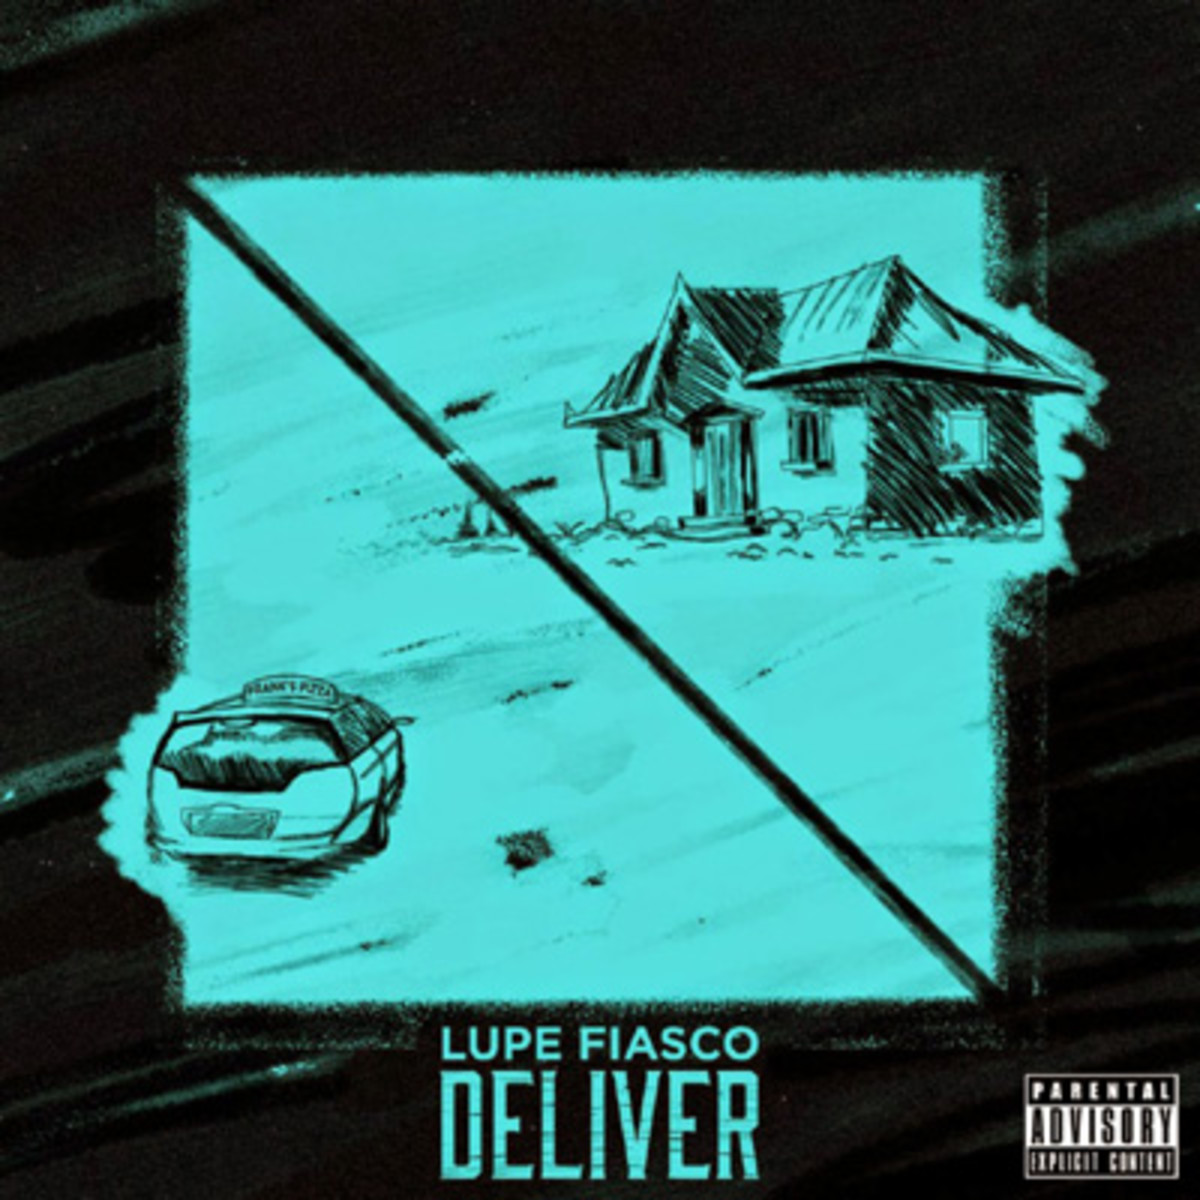 lupefiasco-deliver.jpg